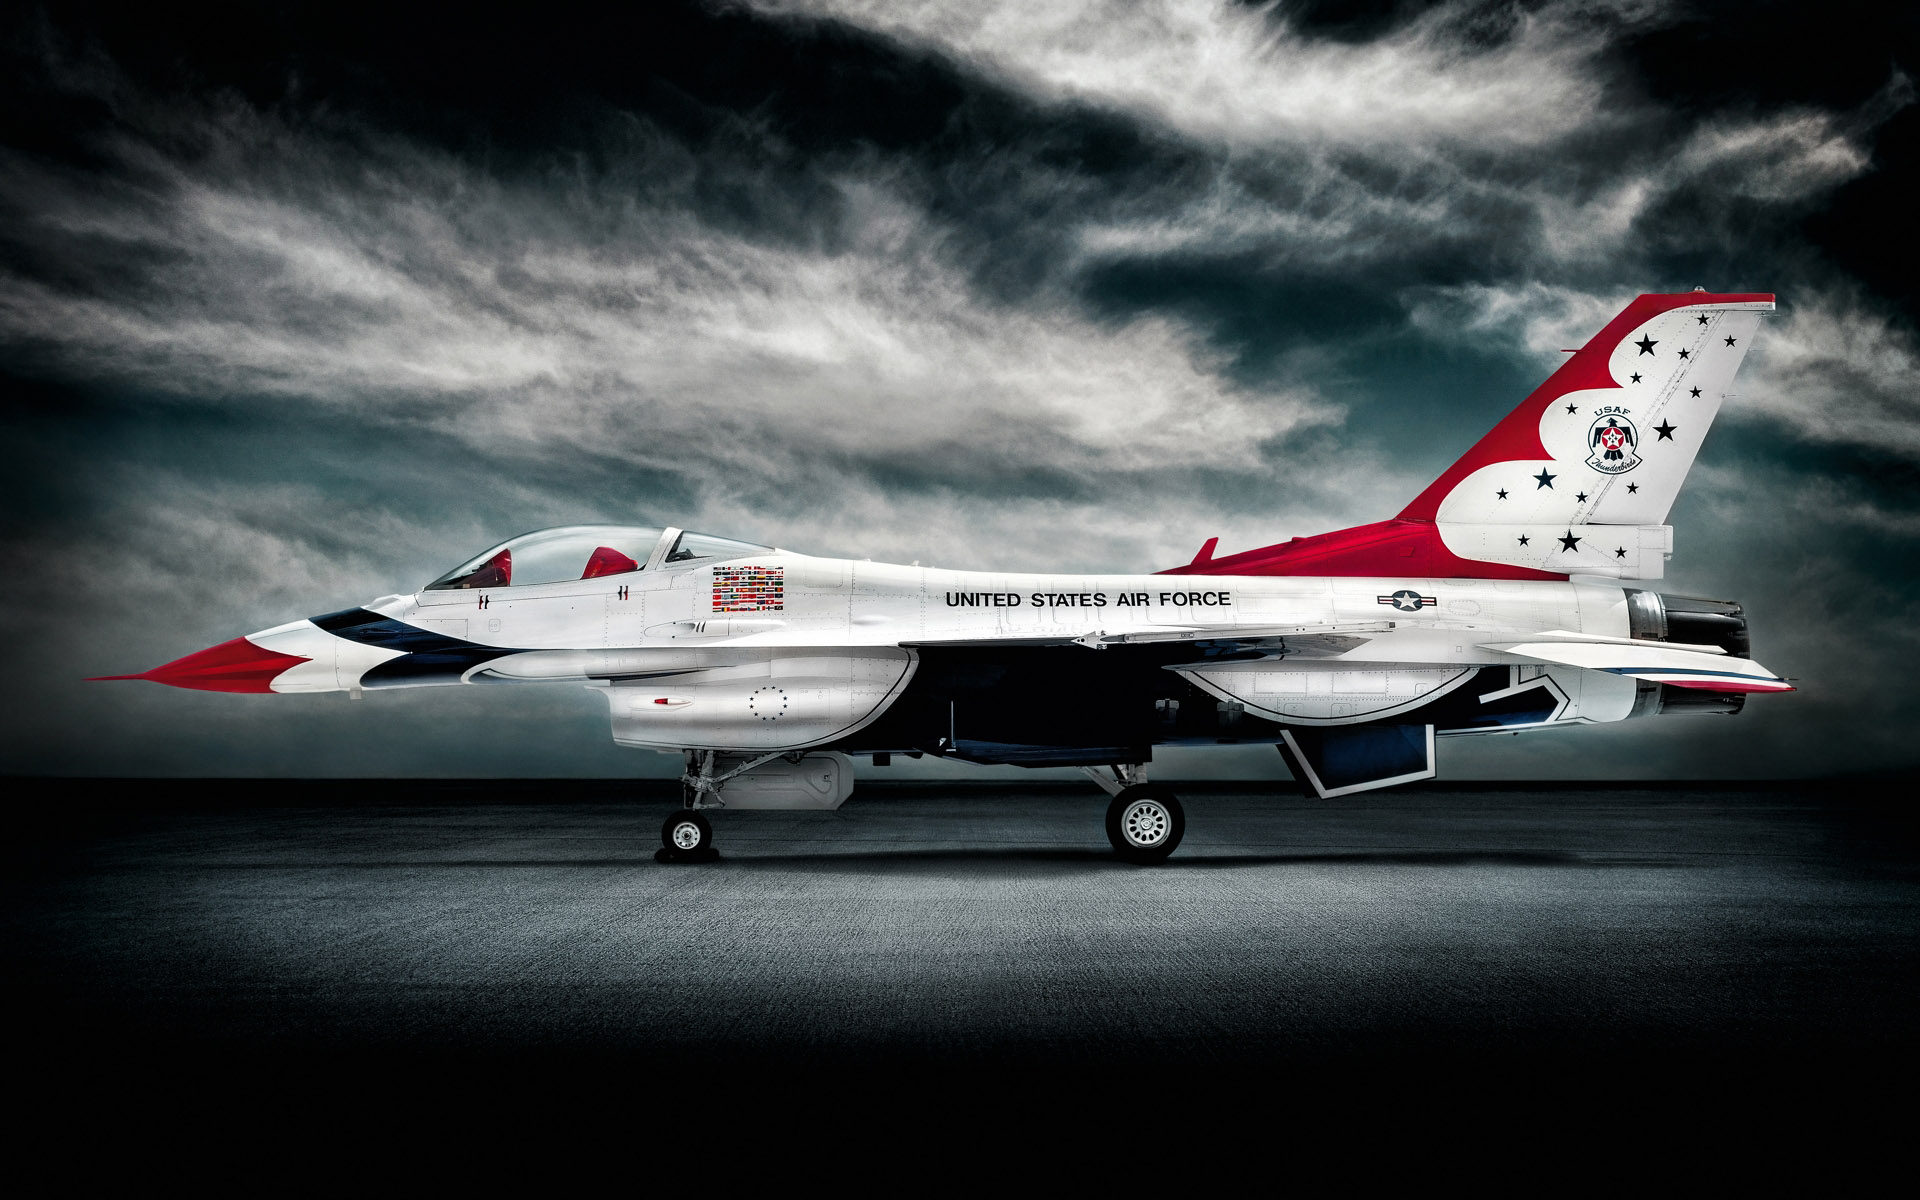 Thunderbirds F16 photographed by Commercial Photographer